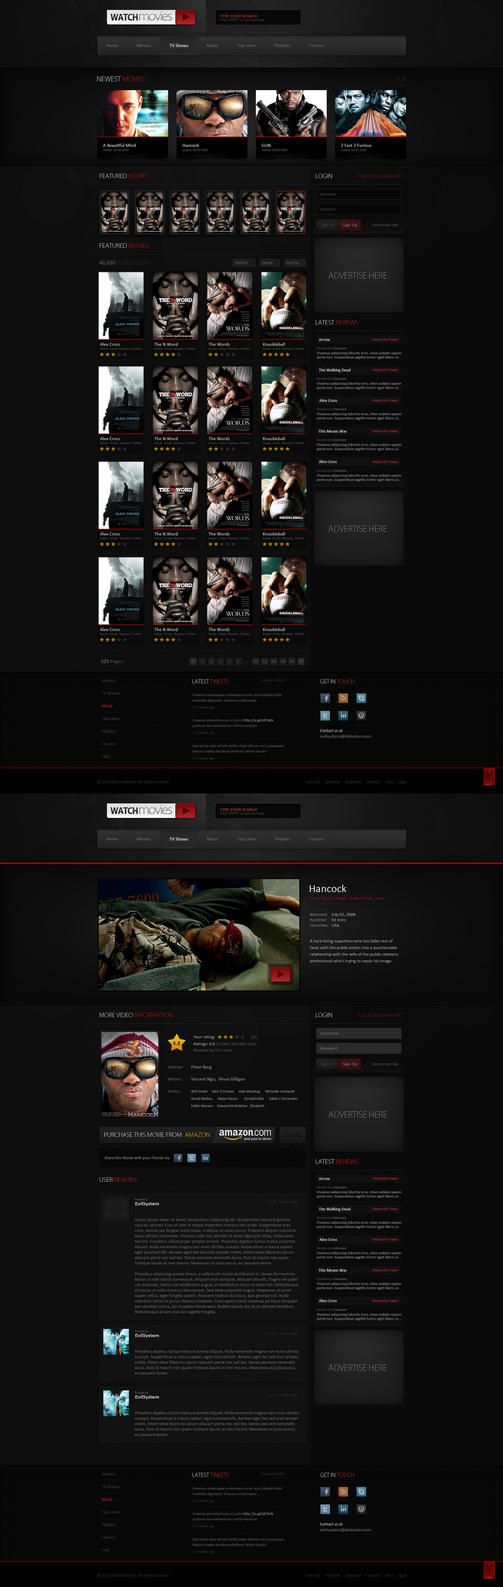 Watch Movies - Web Design by Evil-S